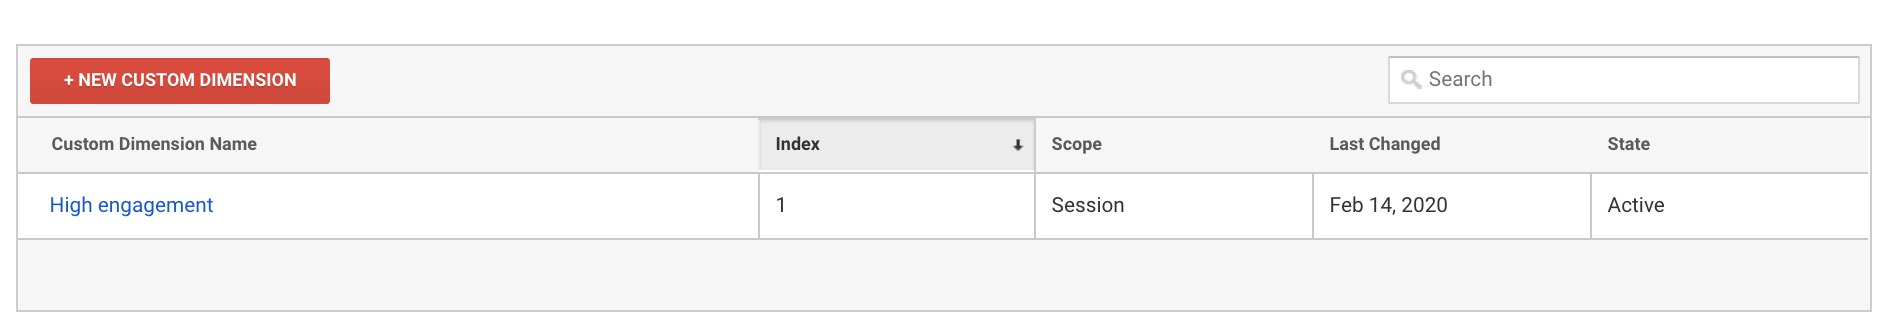 Creating a custom dimension in the Google Analytics interface